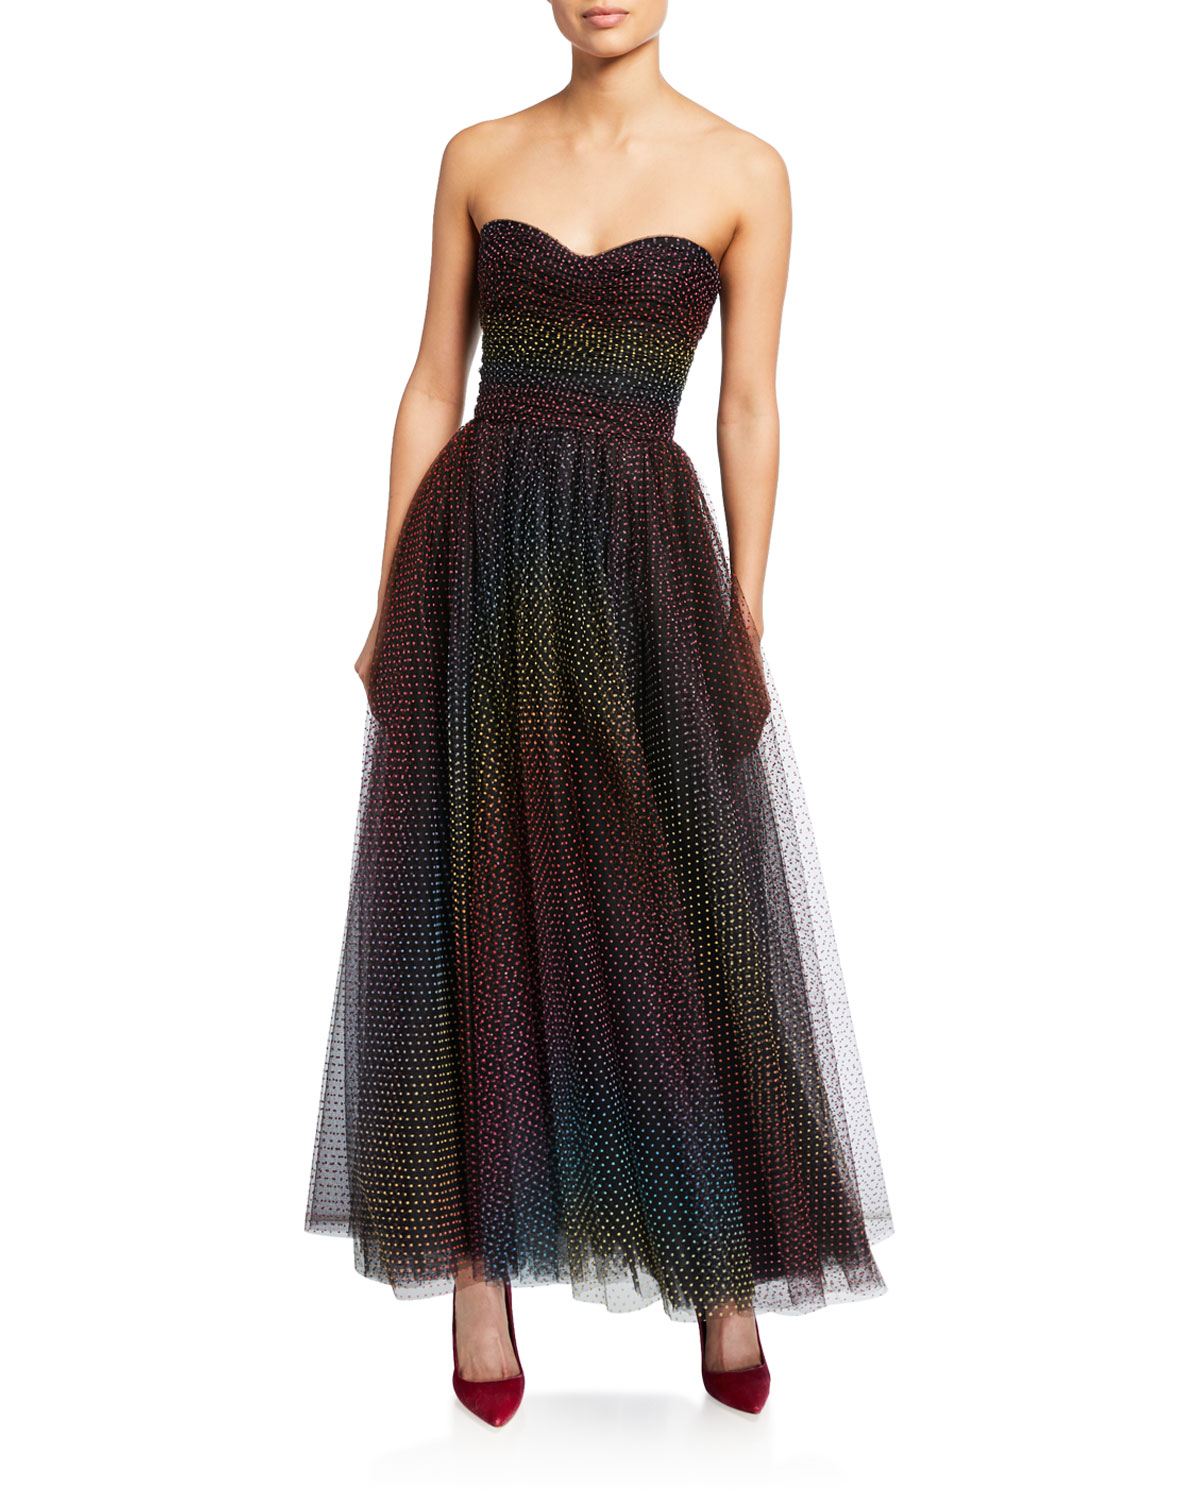 Monique Lhuillier Dresses OMBRE FLOCKED-DOTTED STRAPLESS GOWN